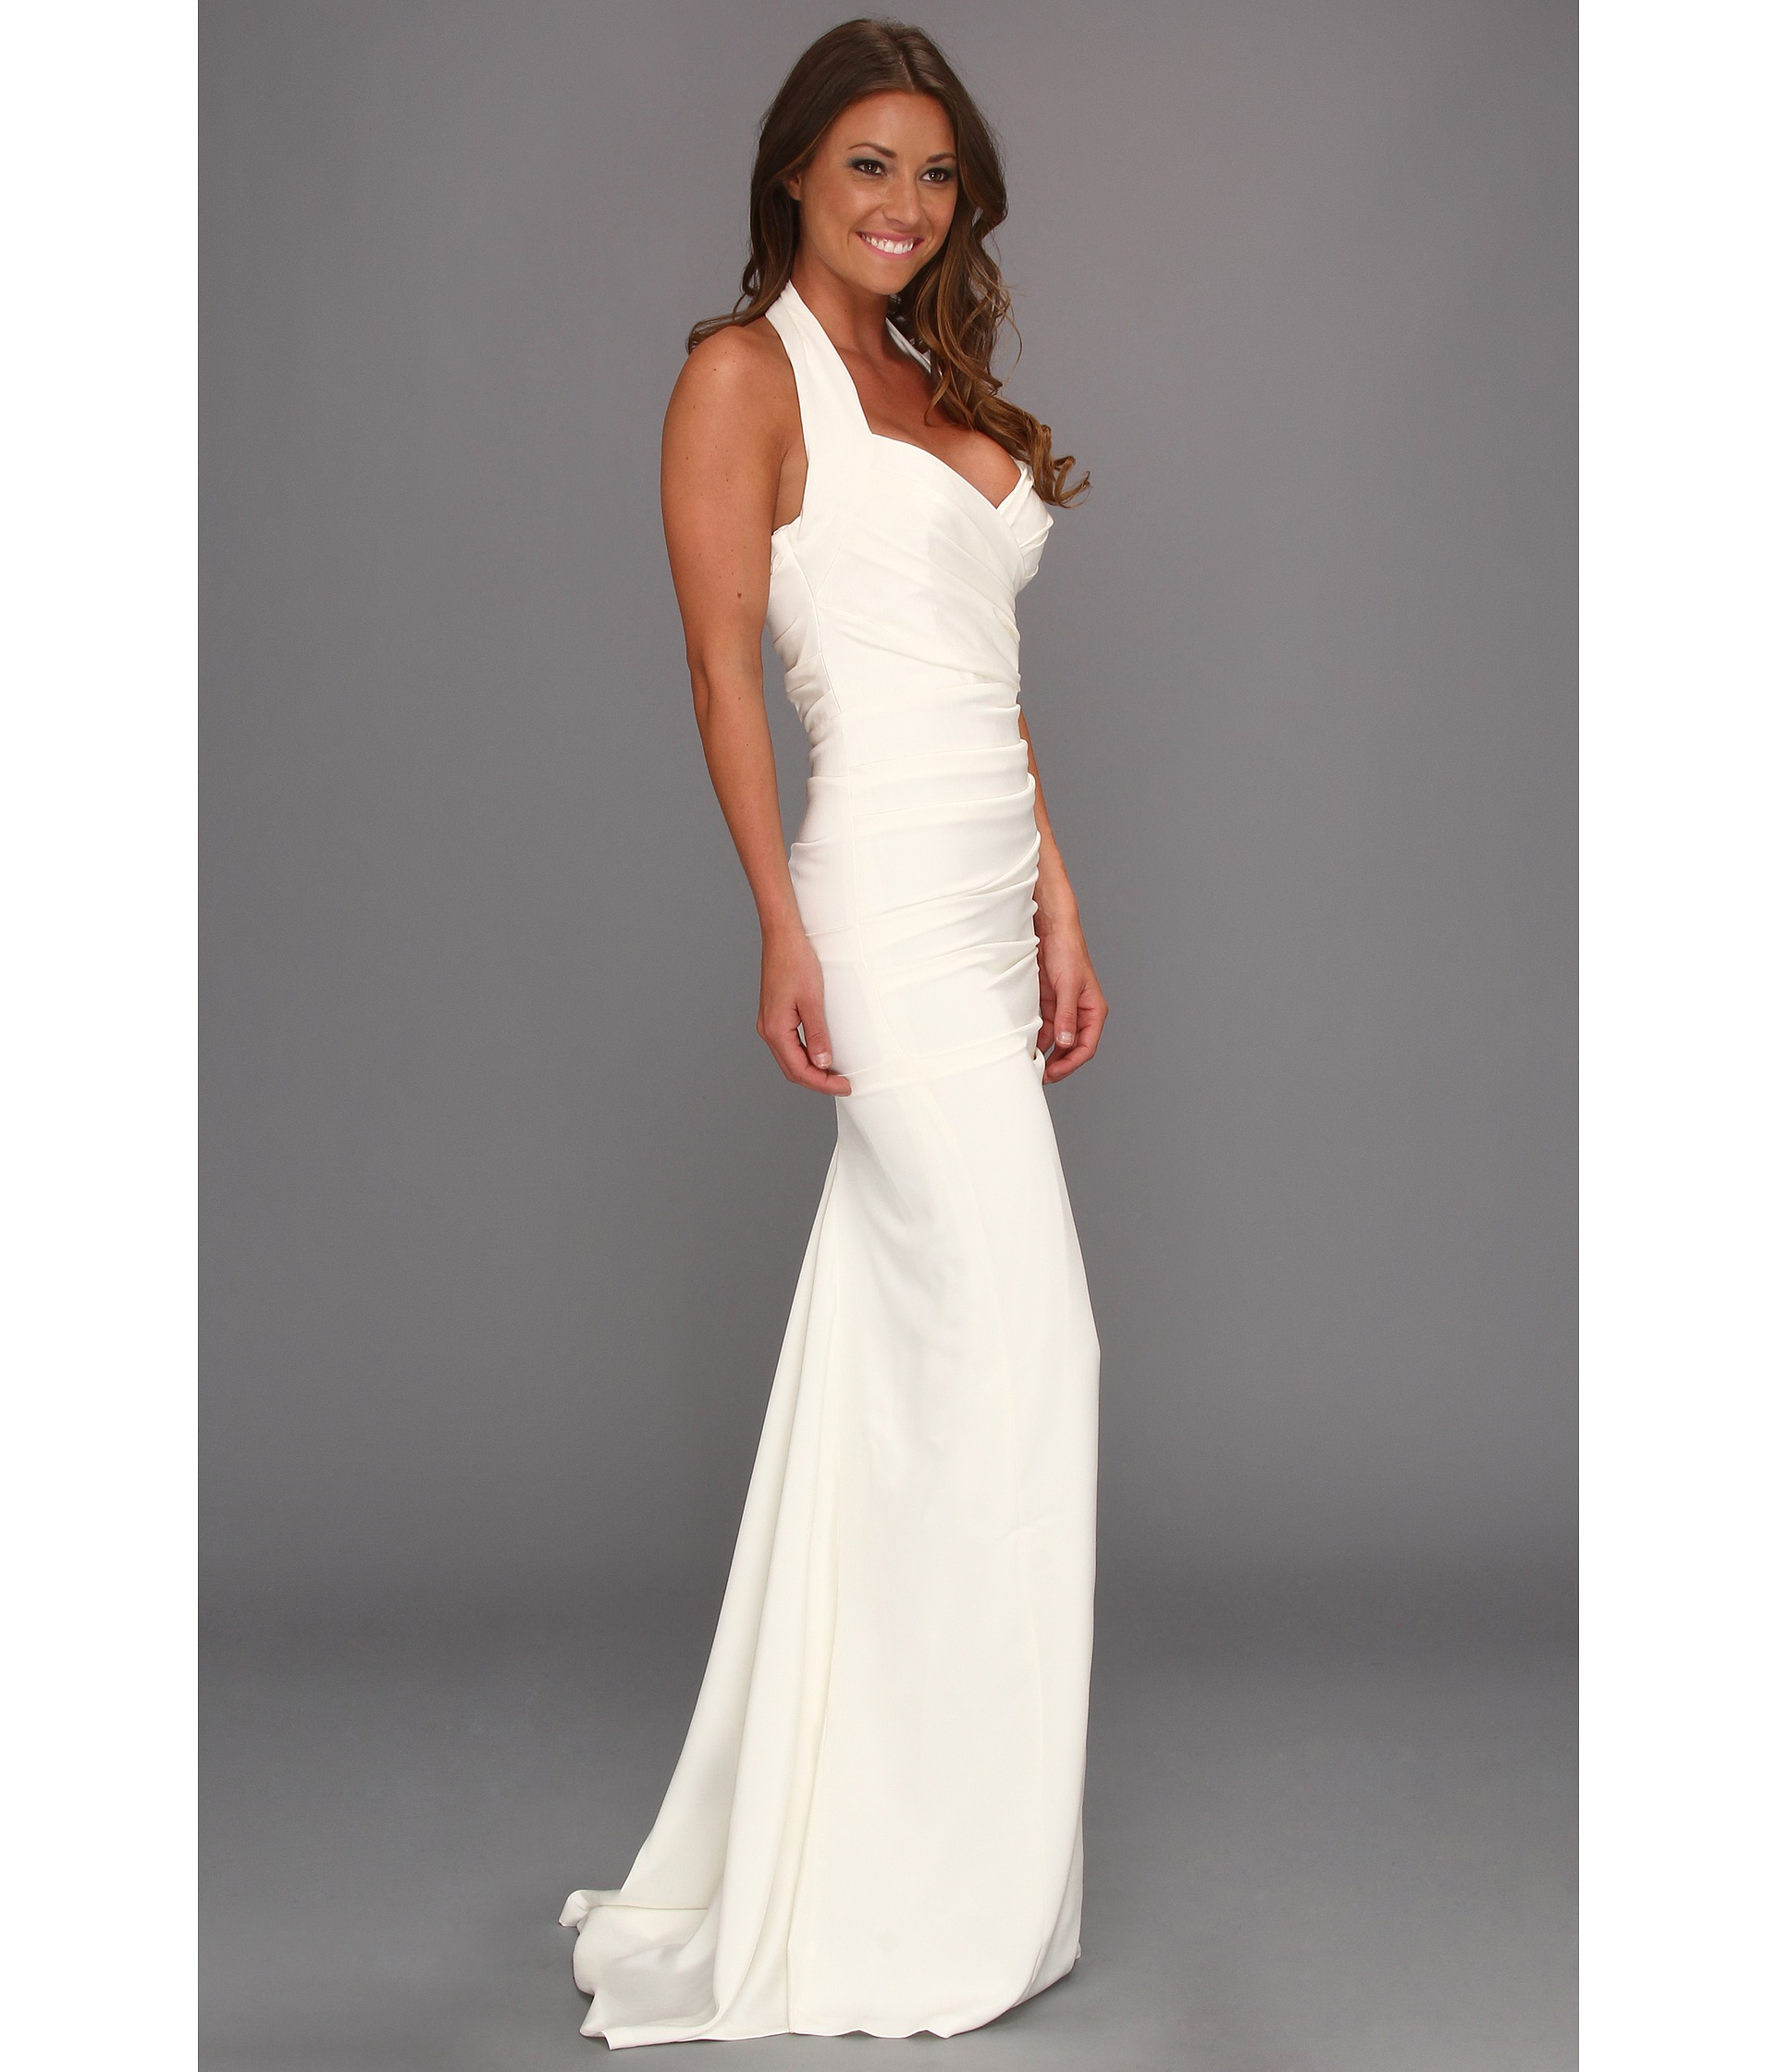 Lyst - Nicole Miller Marilyn Solid Ruched Halter Gown in White